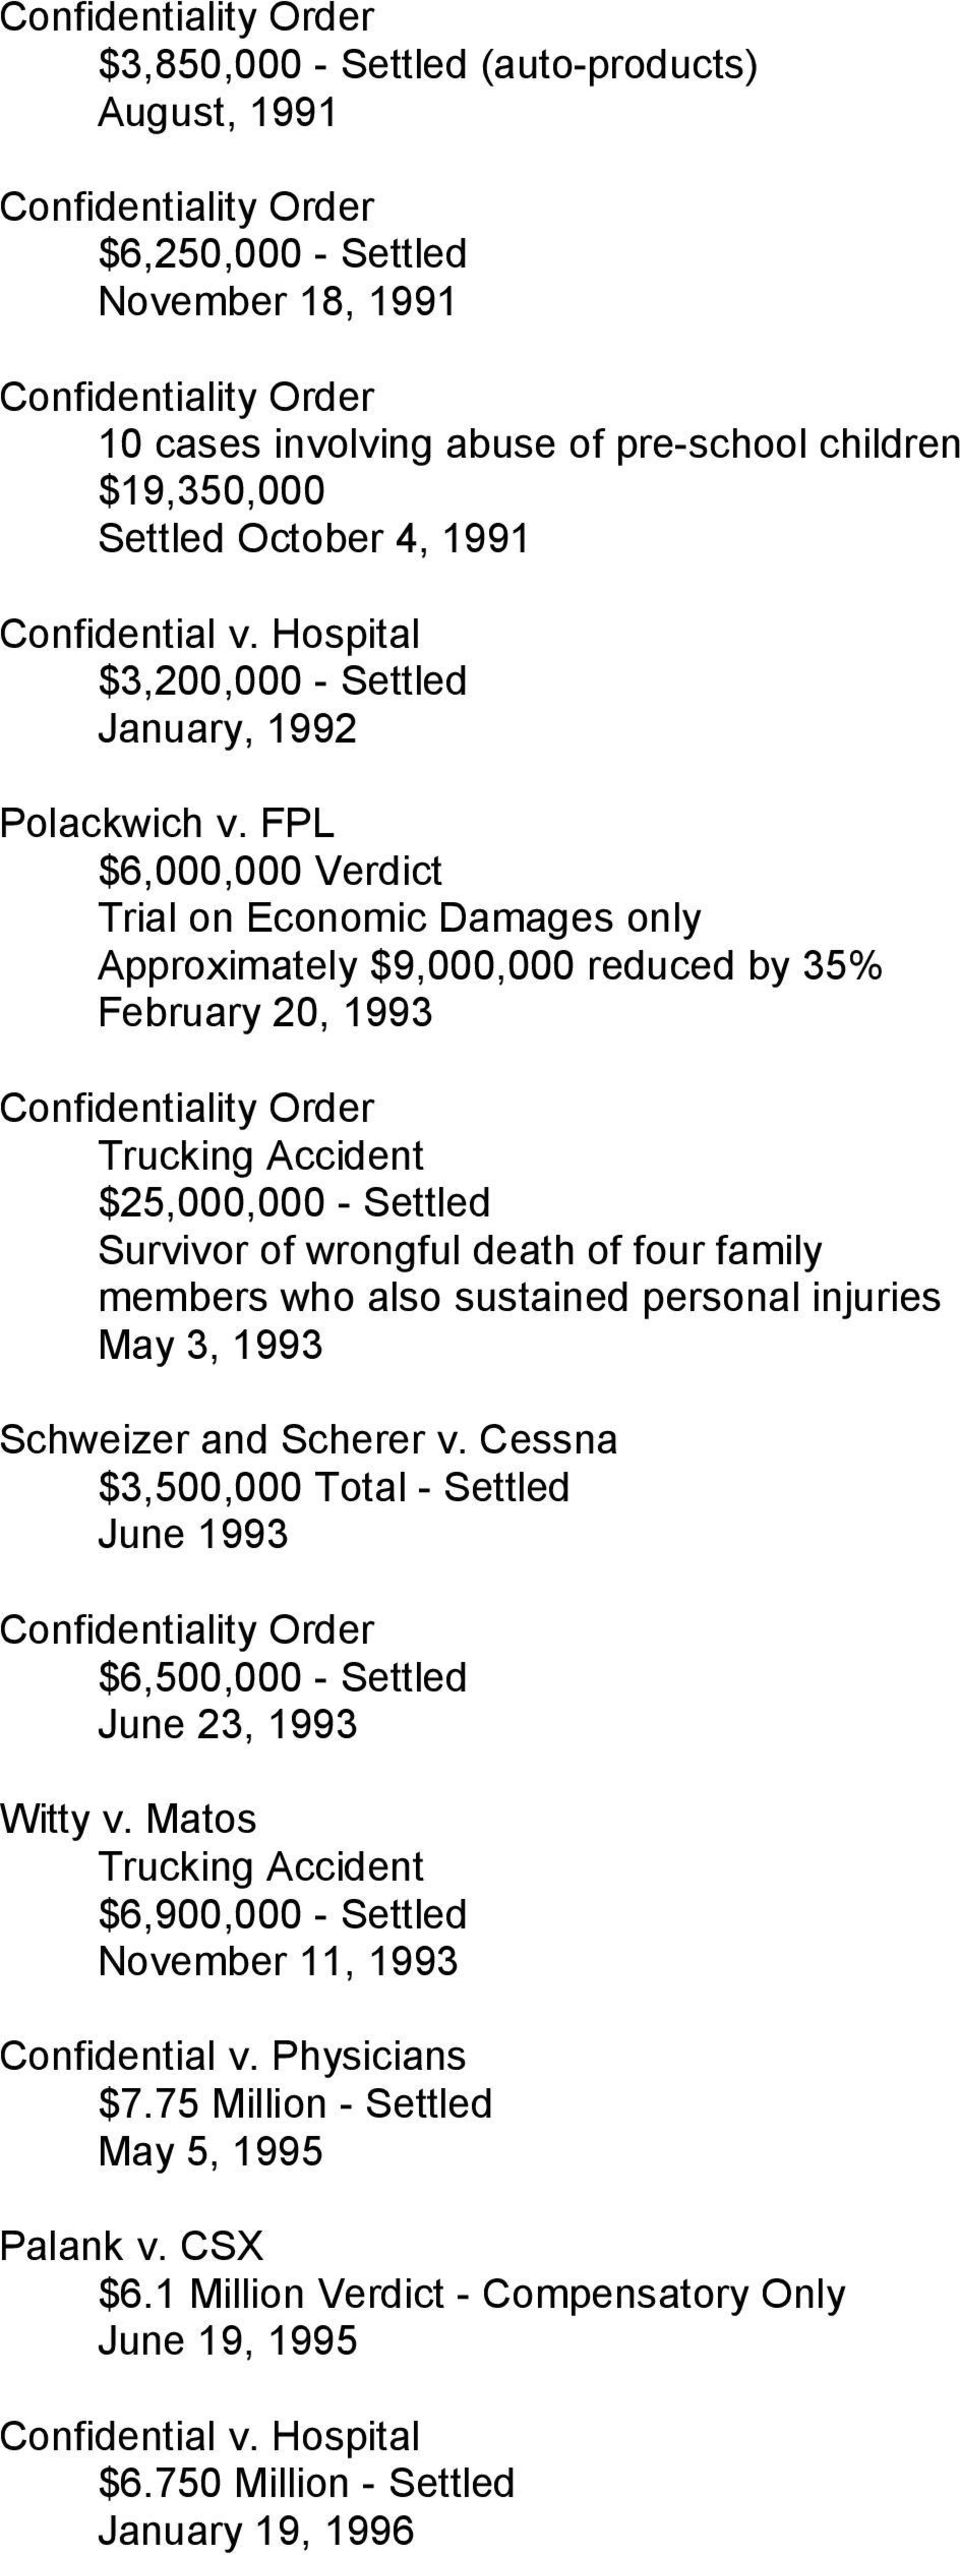 FPL $6,000,000 Verdict Trial on Economic Damages only Approximately $9,000,000 reduced by 35% February 20, 1993 ity Order Trucking Accident $25,000,000 - Settled Survivor of wrongful death of four